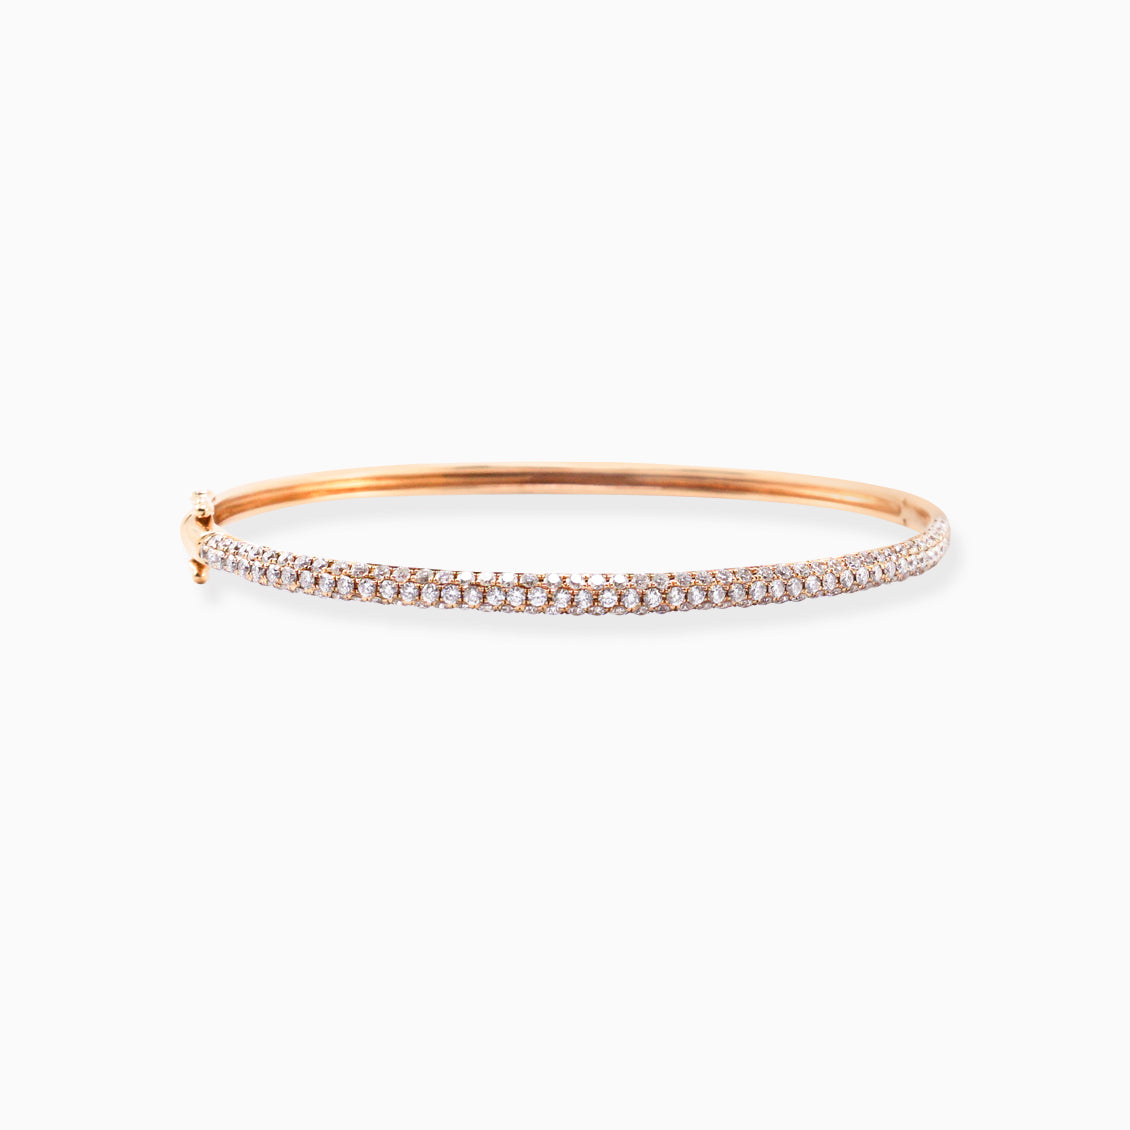 Bangle en oro rosado de 18K con brillantes